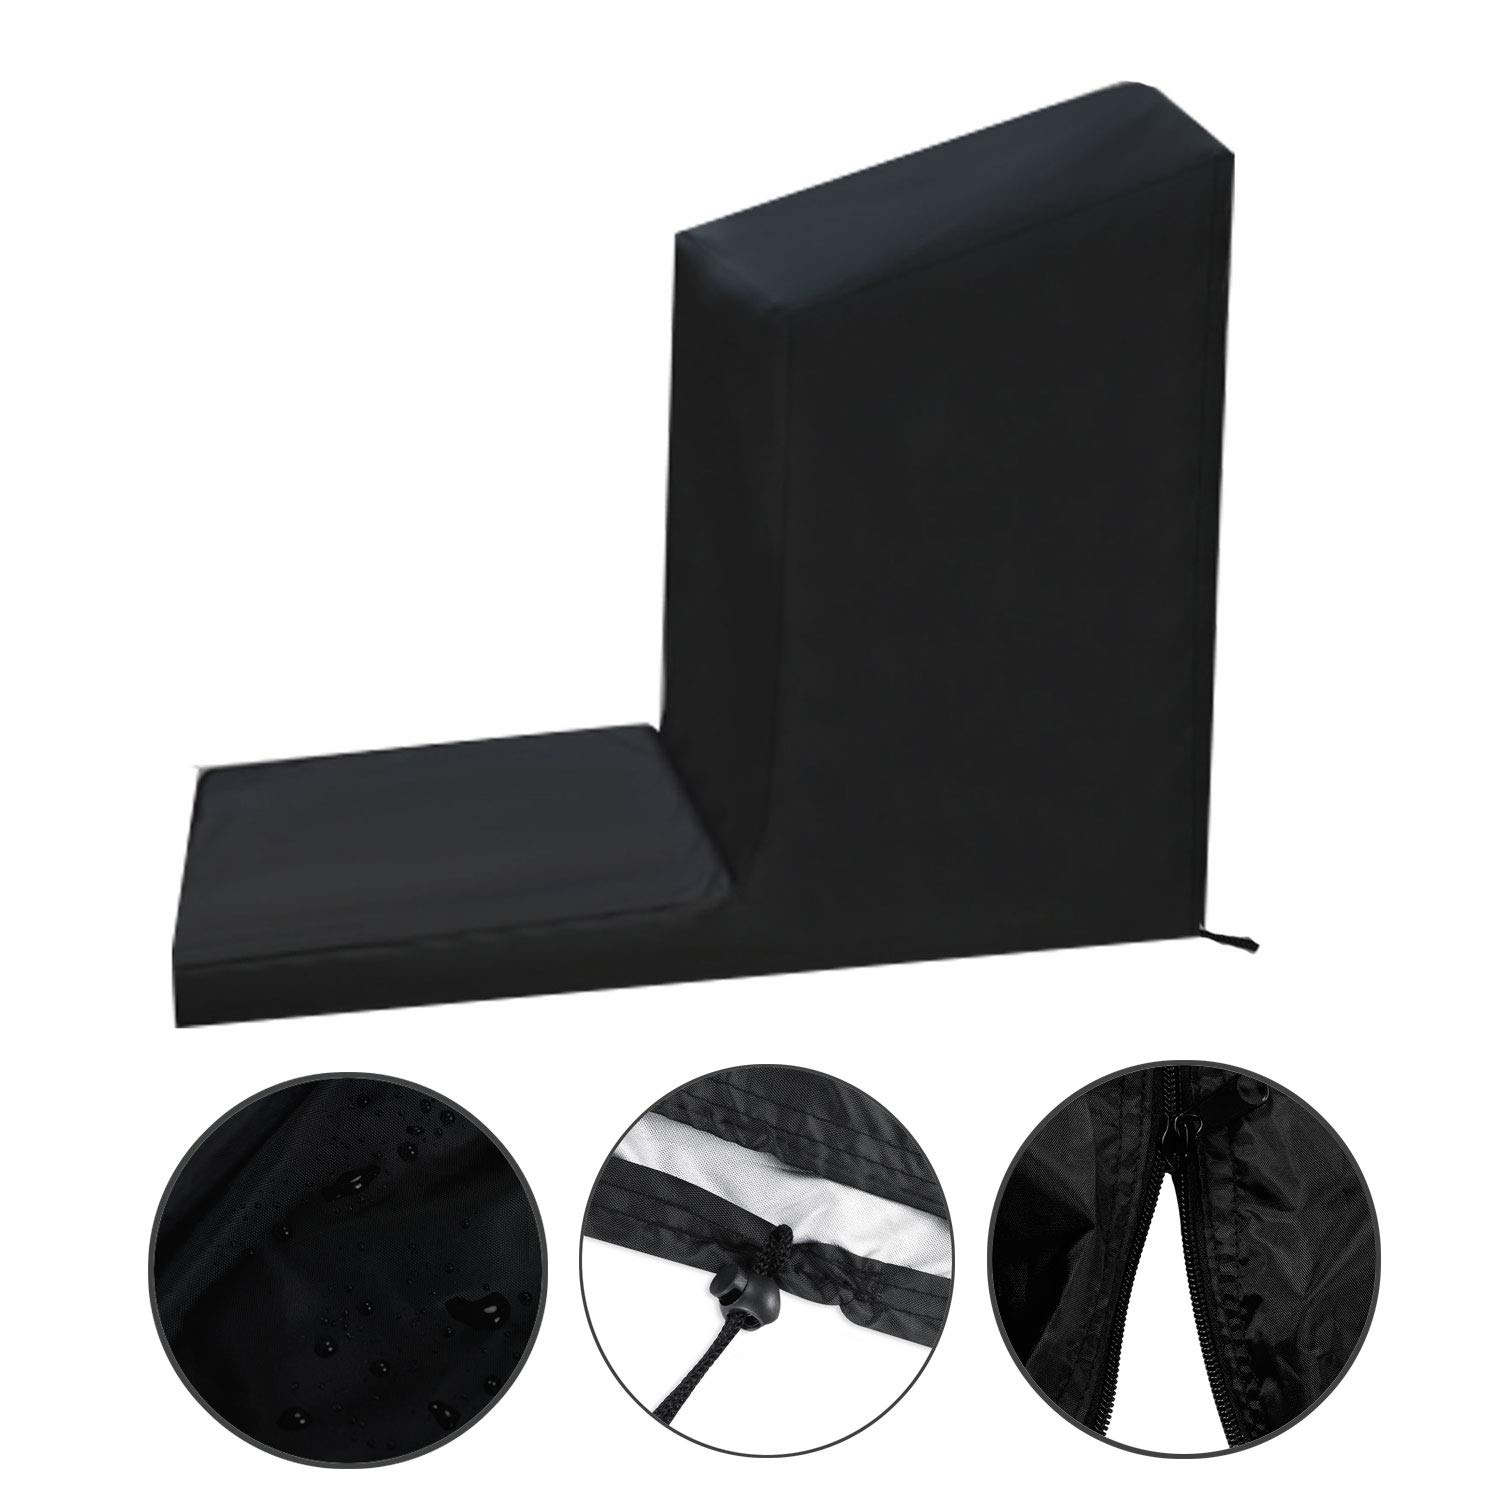 Fitness Equipment Protective Cover for Indoor//Outdoor Use Non-Folding Sports Running Machine Cover Made of Dustproof /& Waterproof Polyester Fabric iiSPORT Treadmill Cover